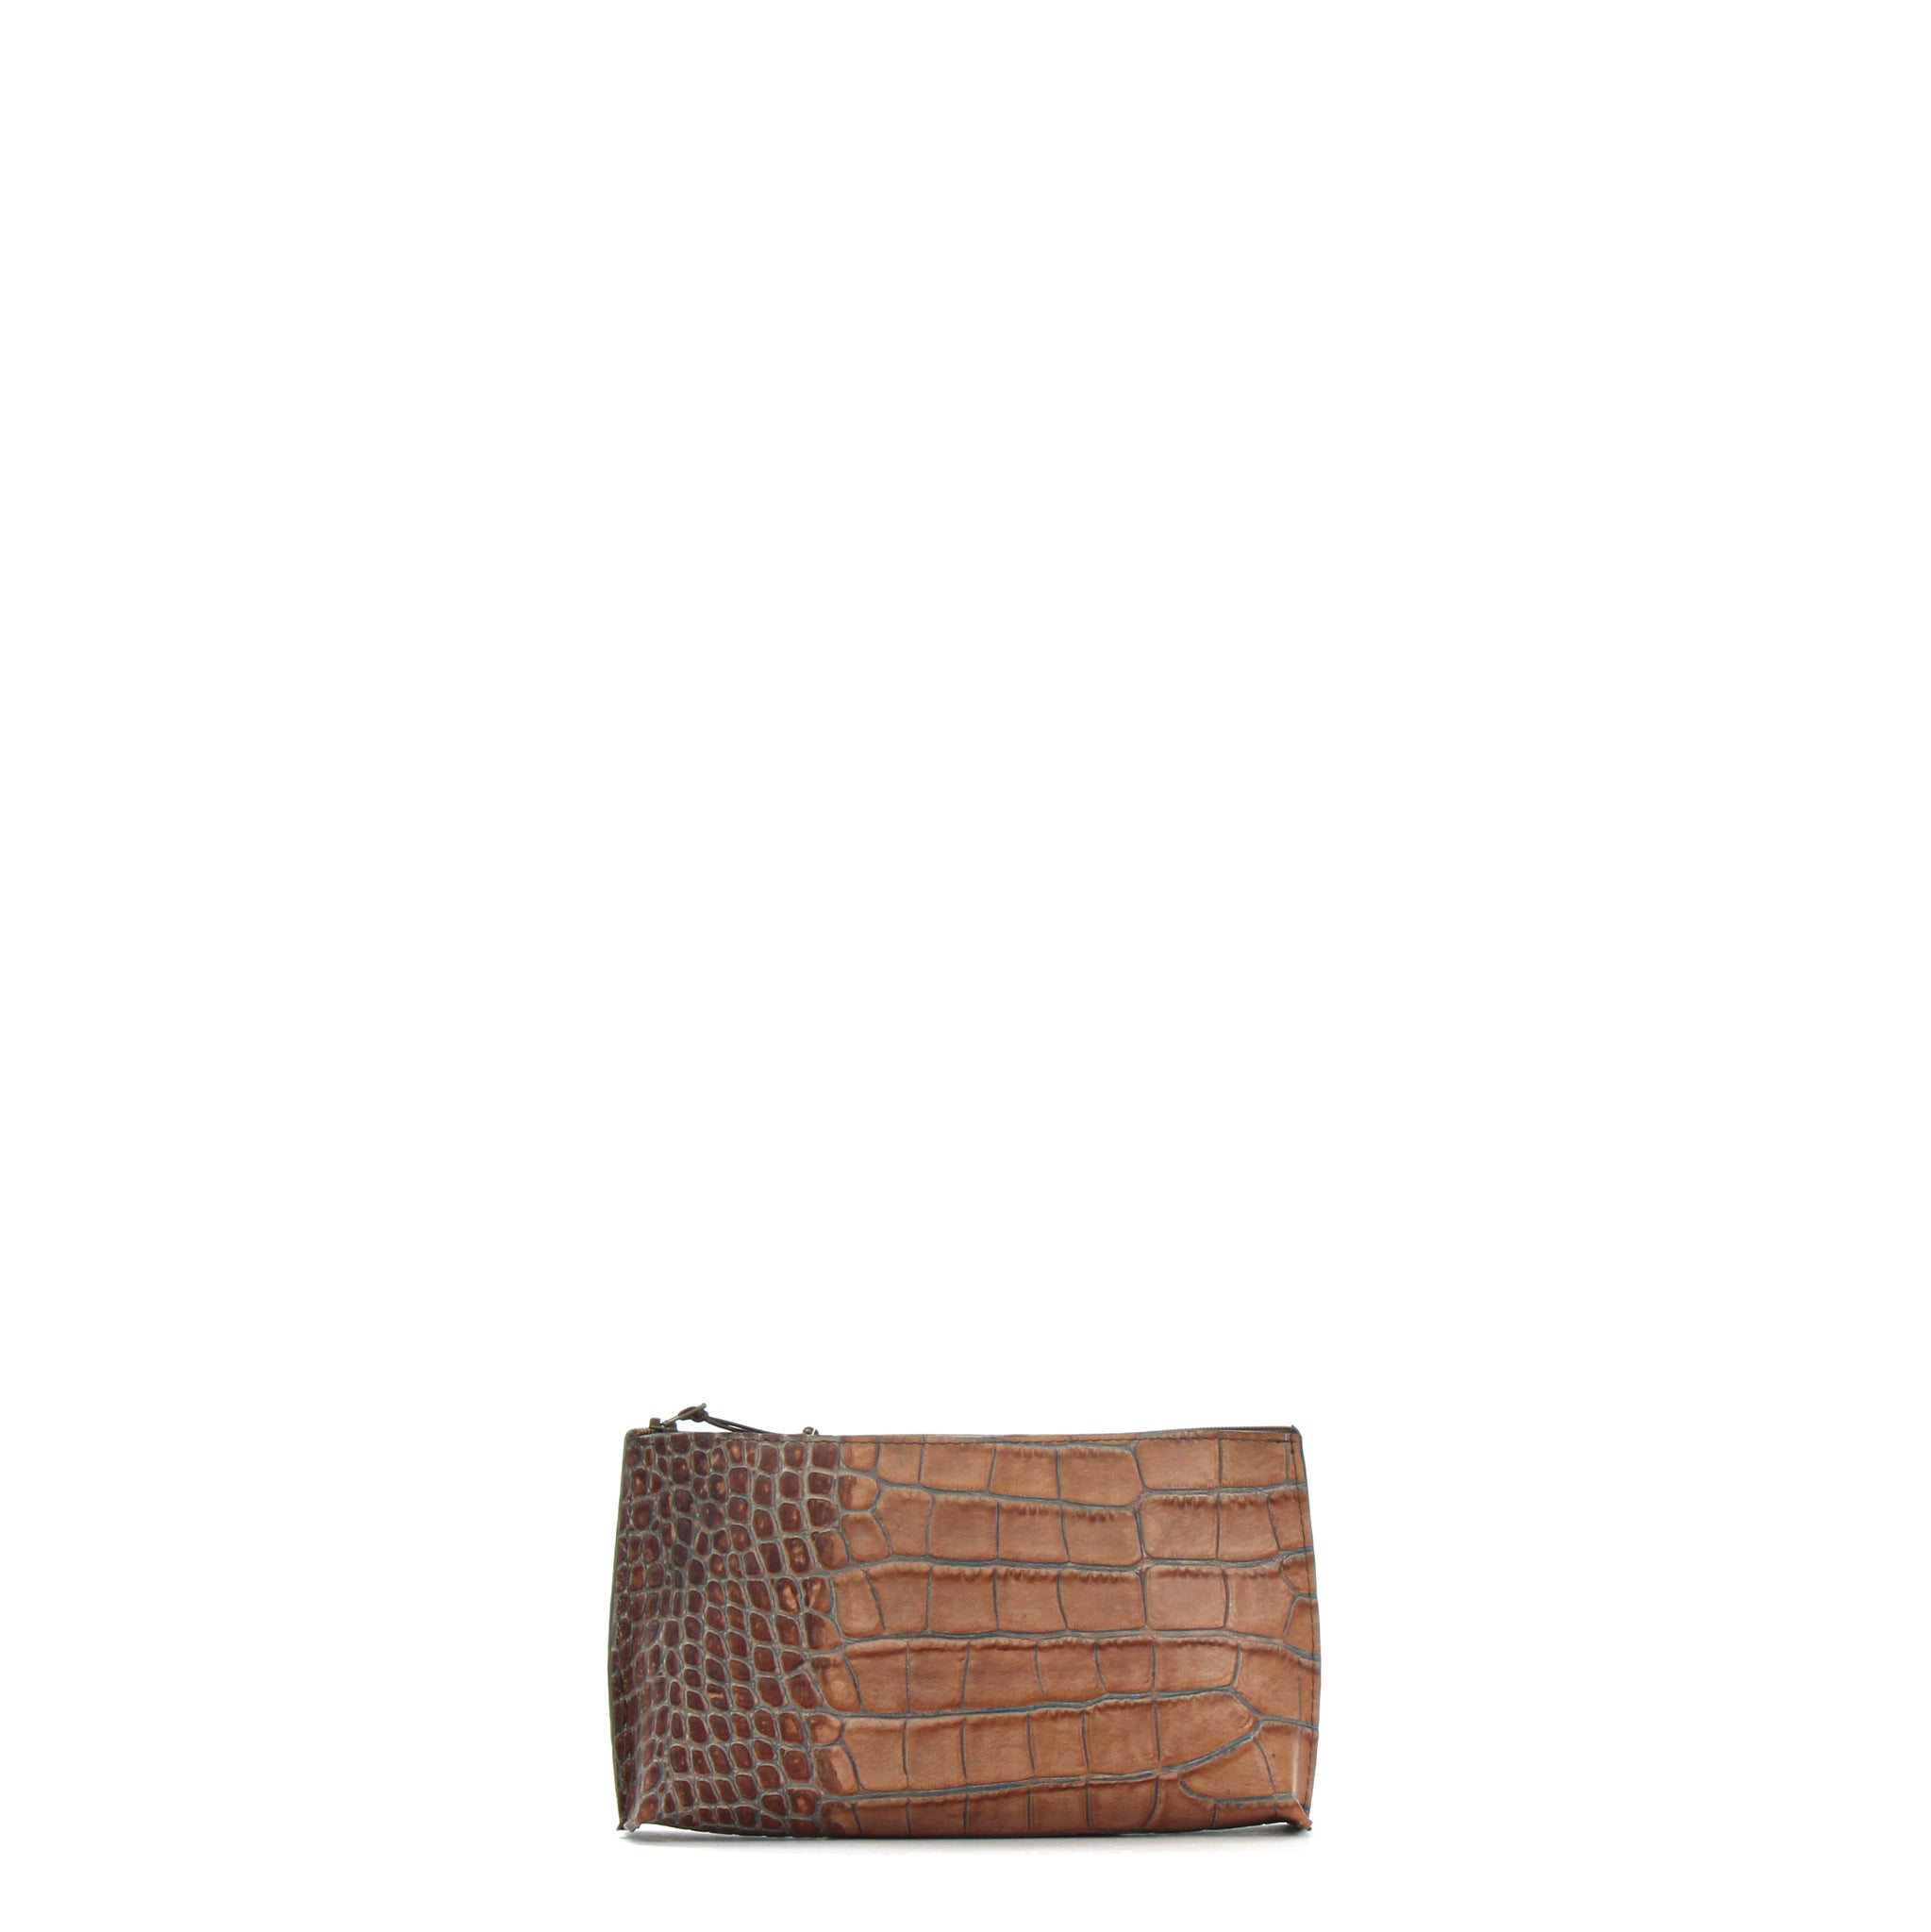 ESSENTIAL POUCH LATTE EMBOSSED GATOR